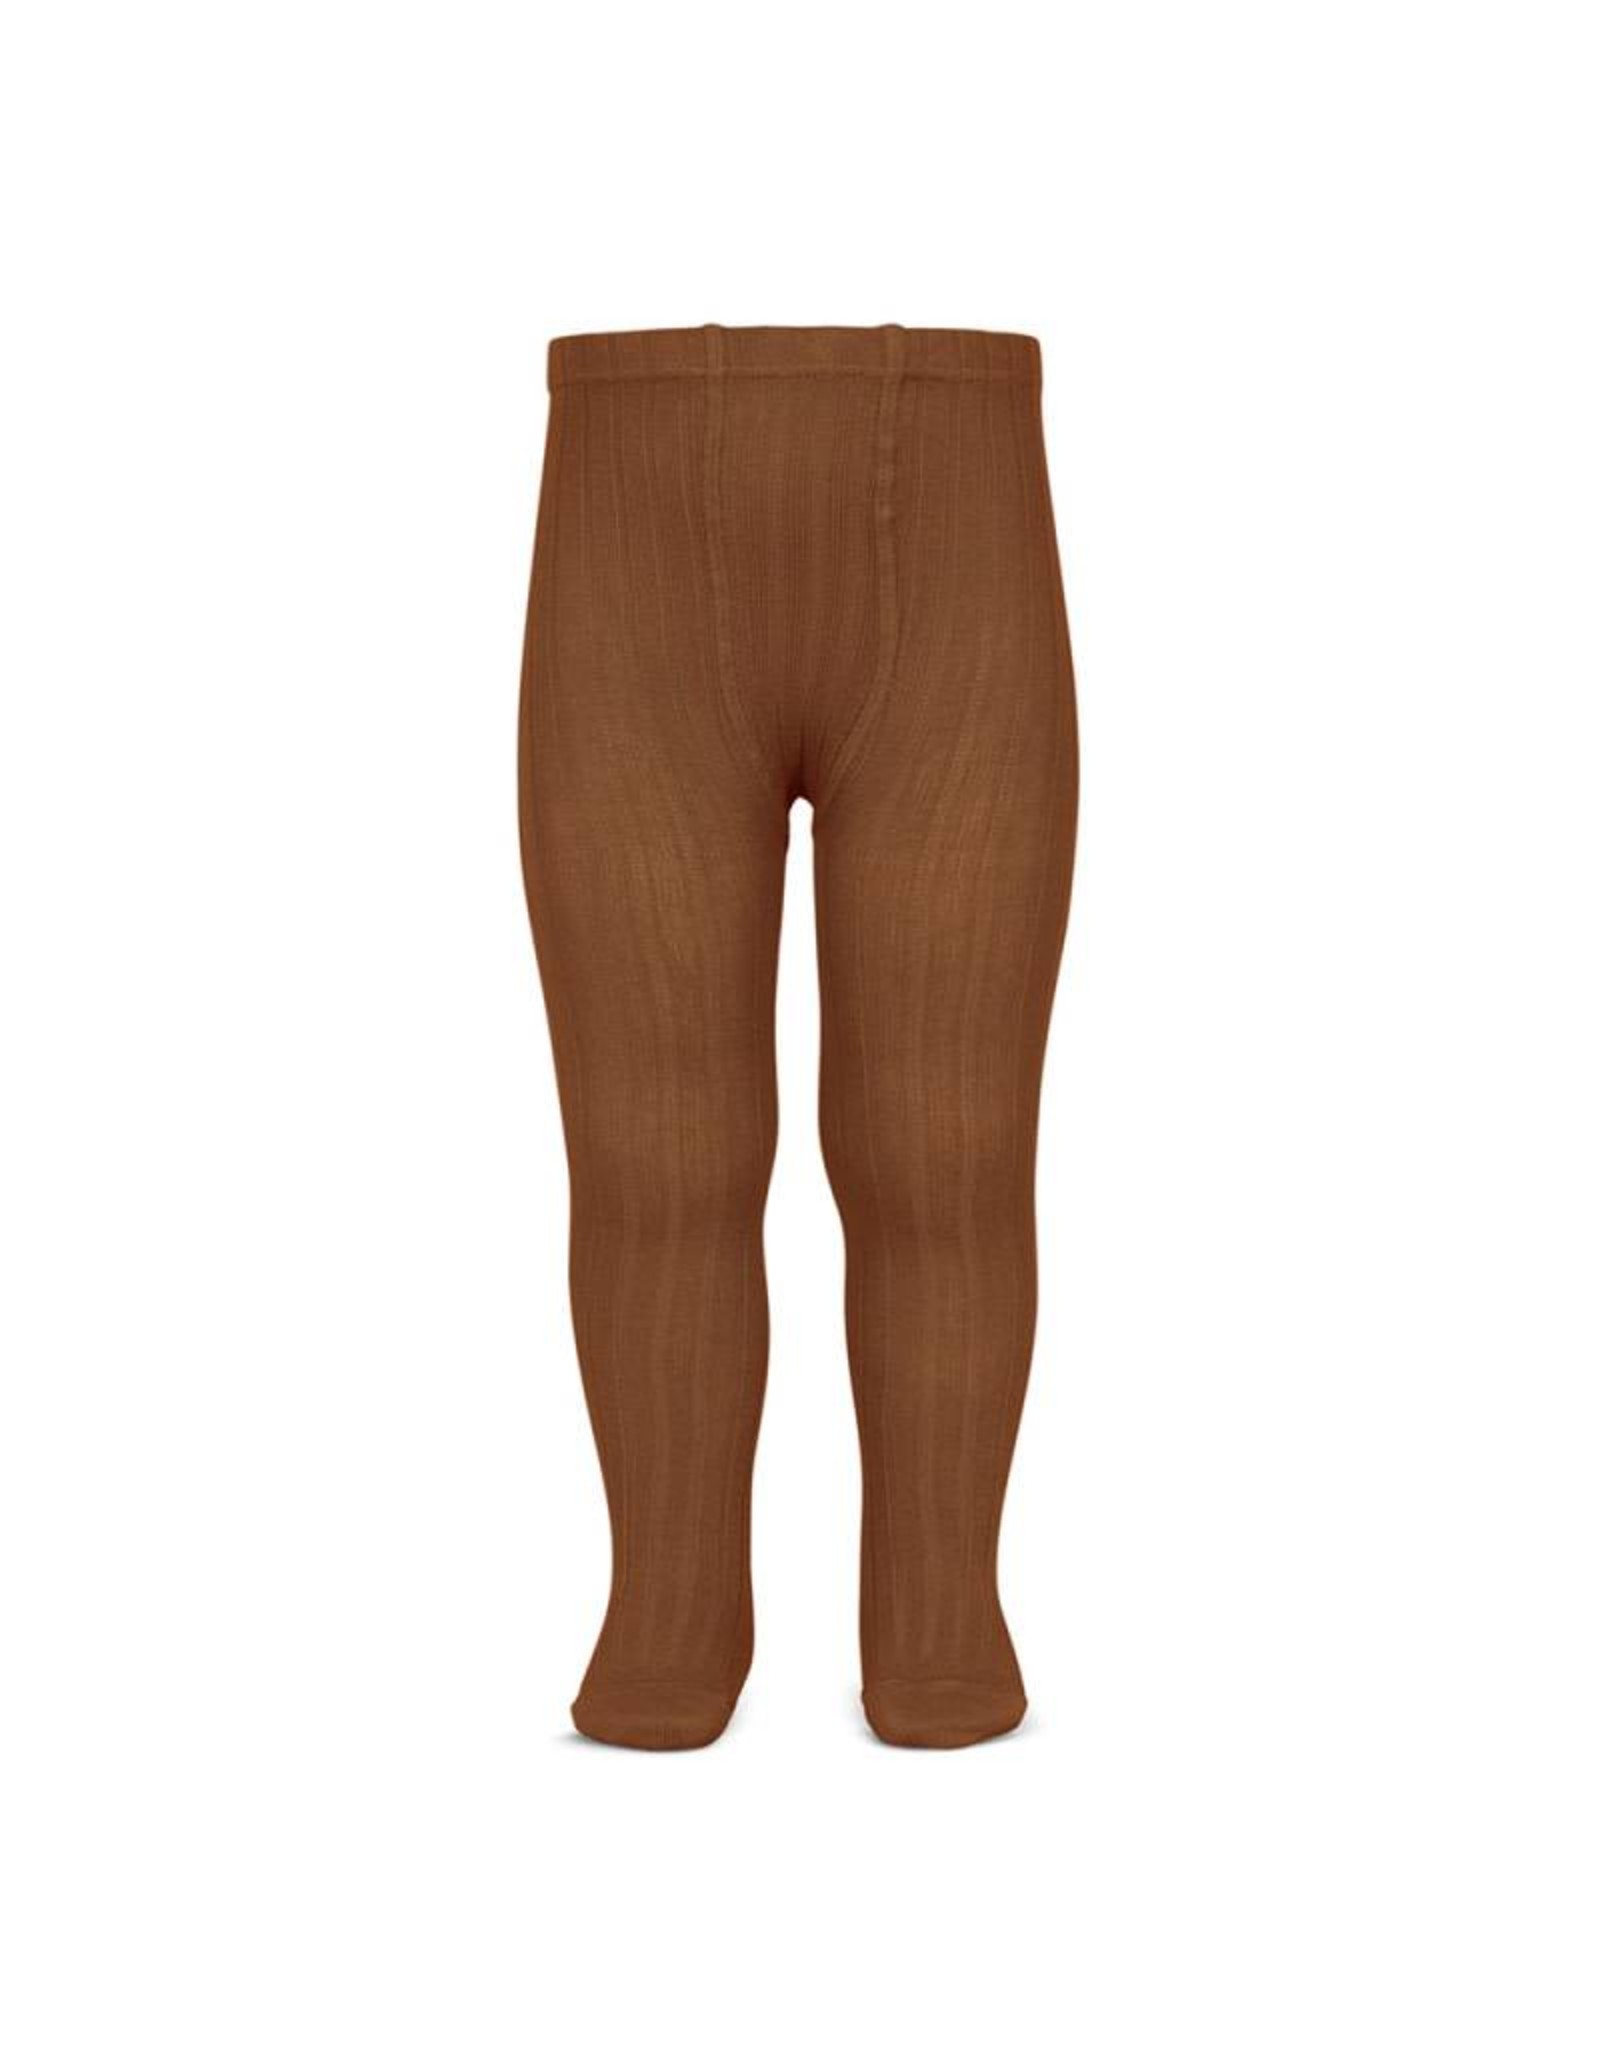 CONDOR Oxide Ribbed Tights